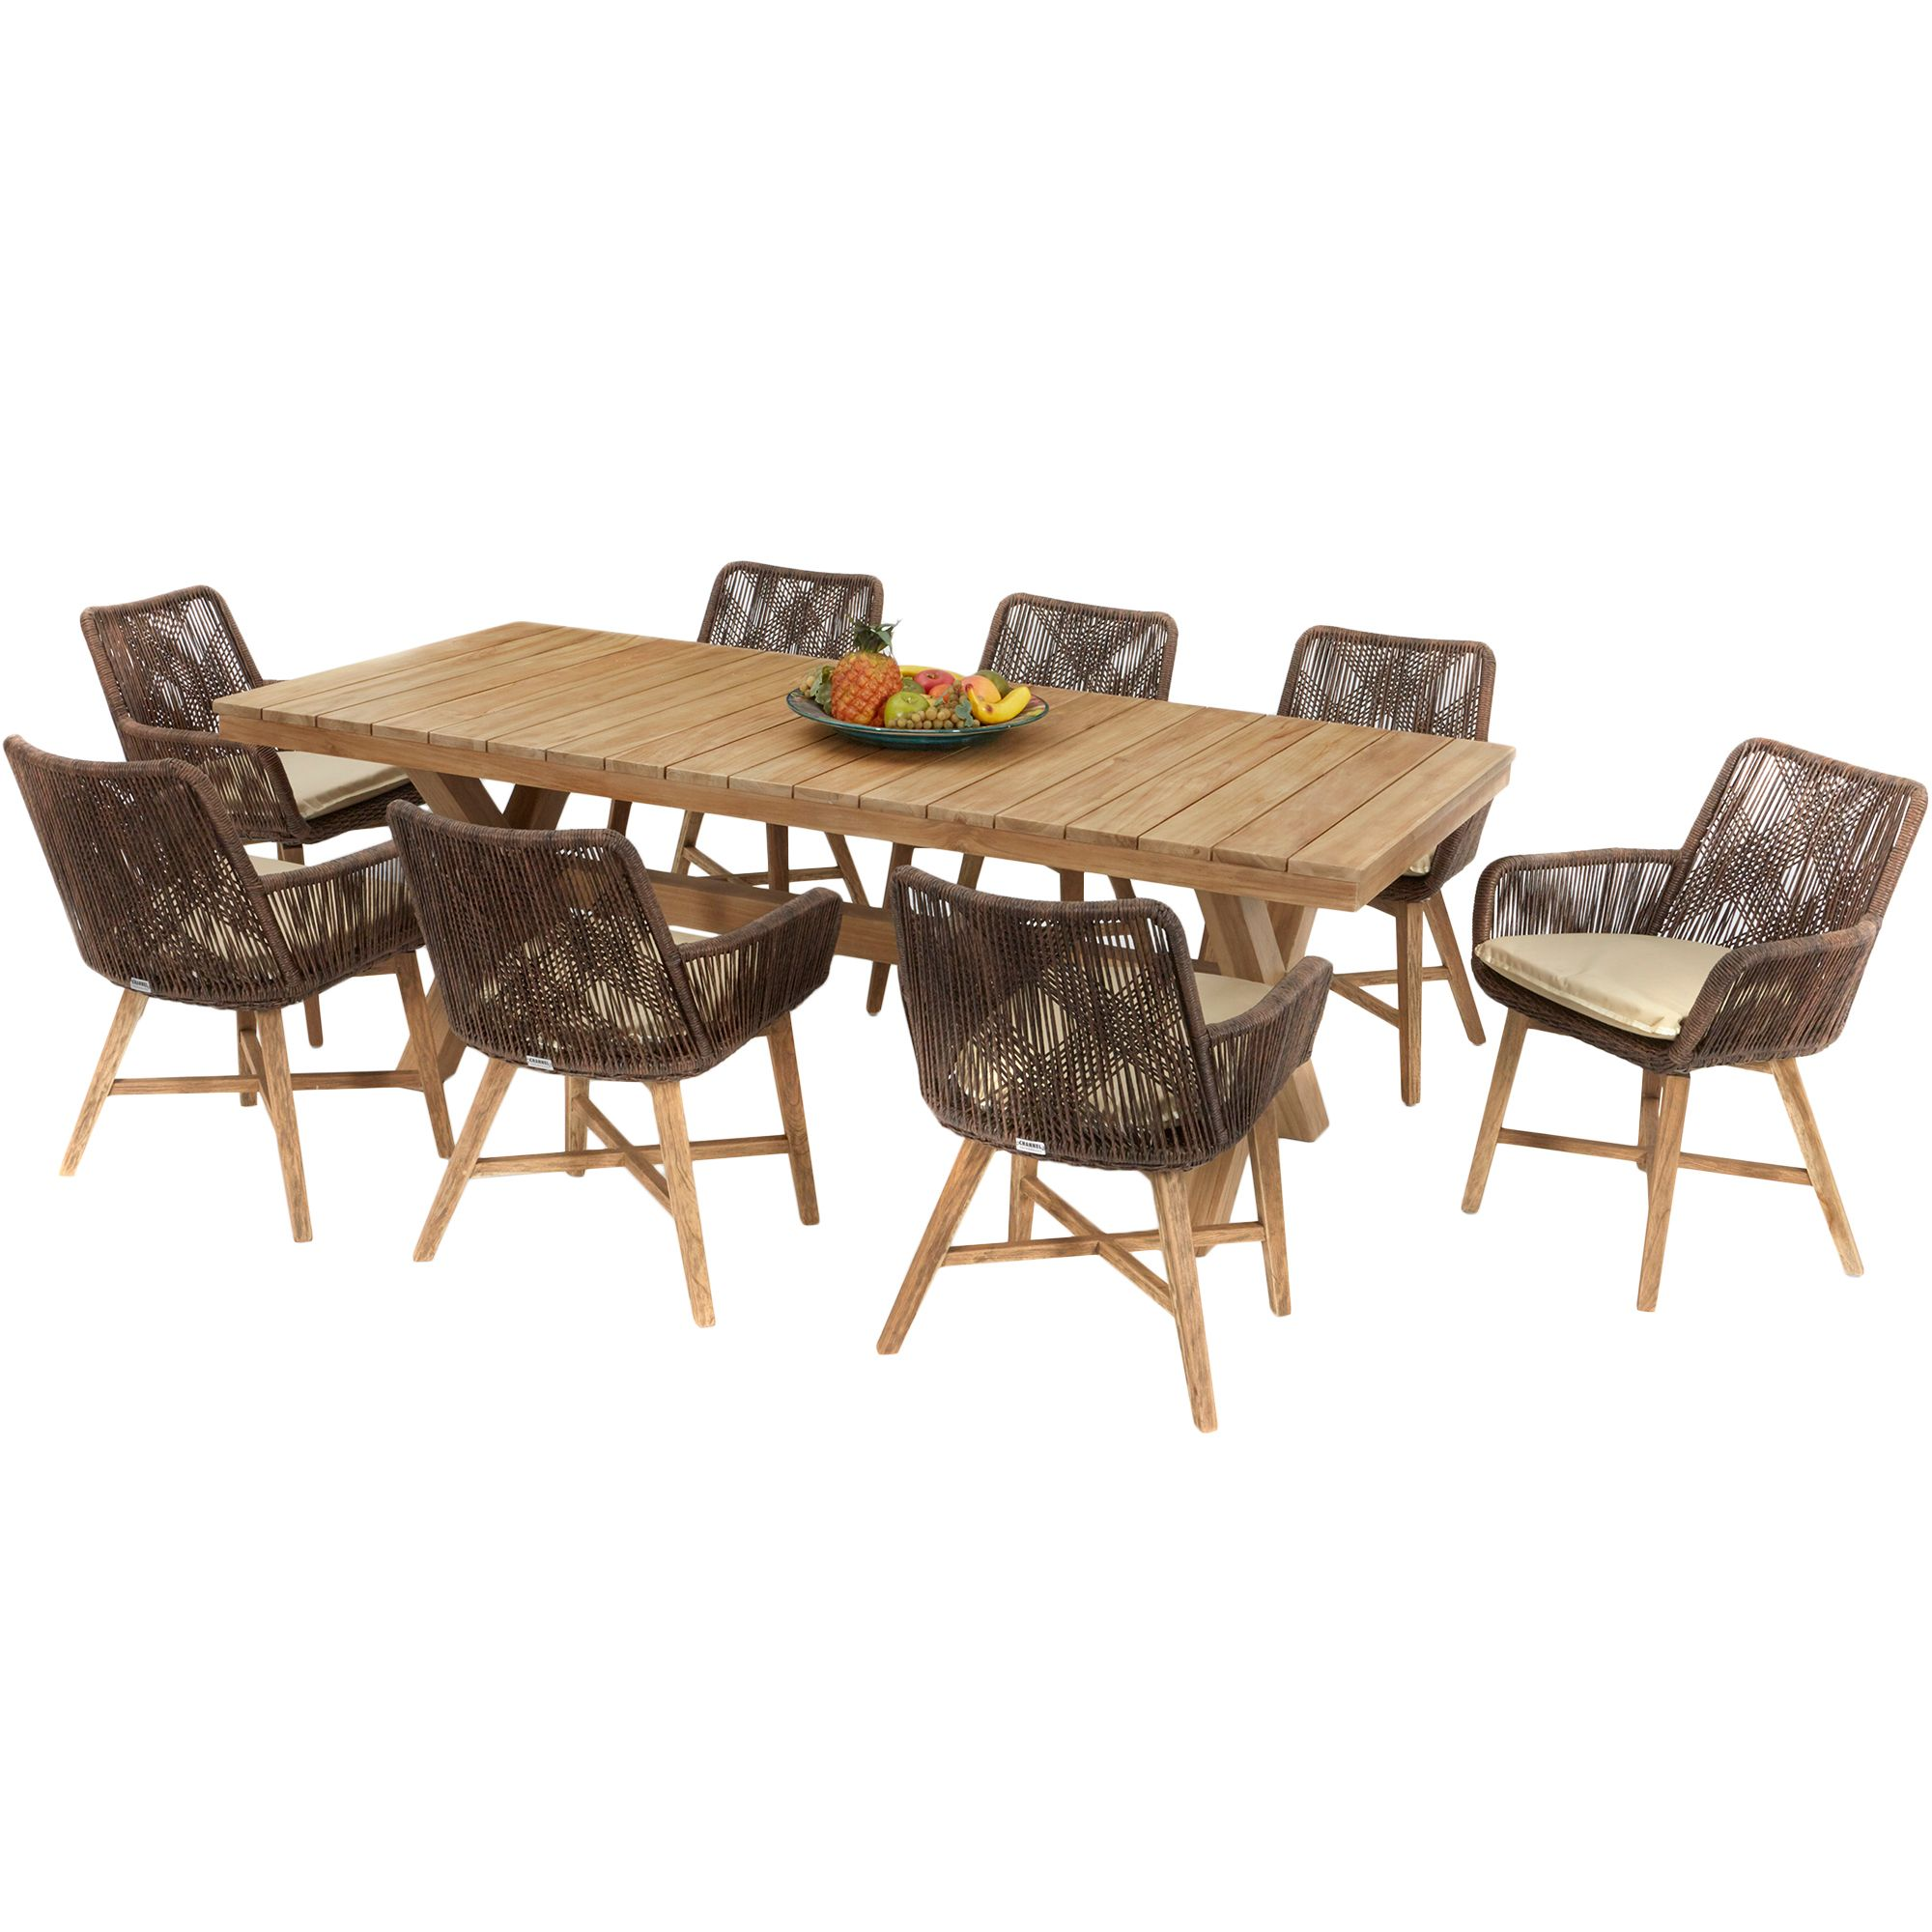 8 seater catalina outdoor dining table  chairs set